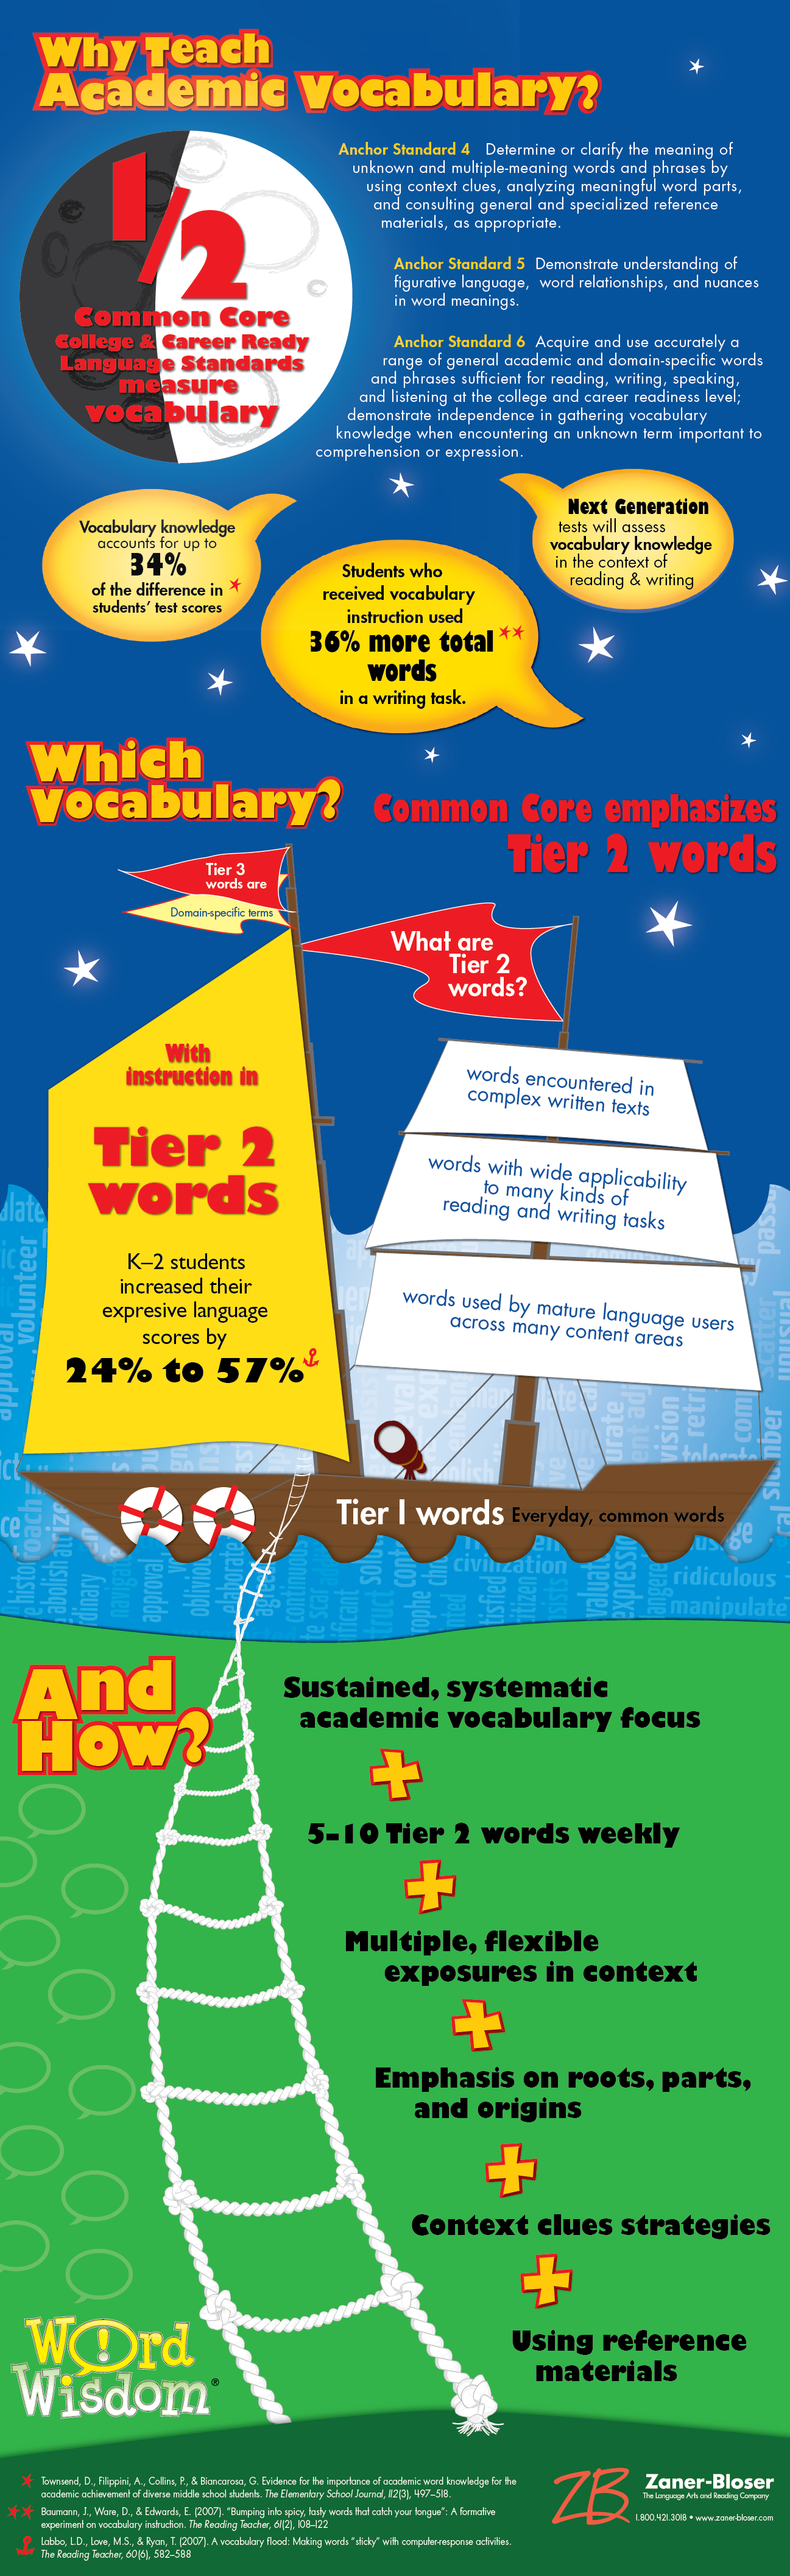 "An infographic answering the question ""why teach academic vocabulary?"""